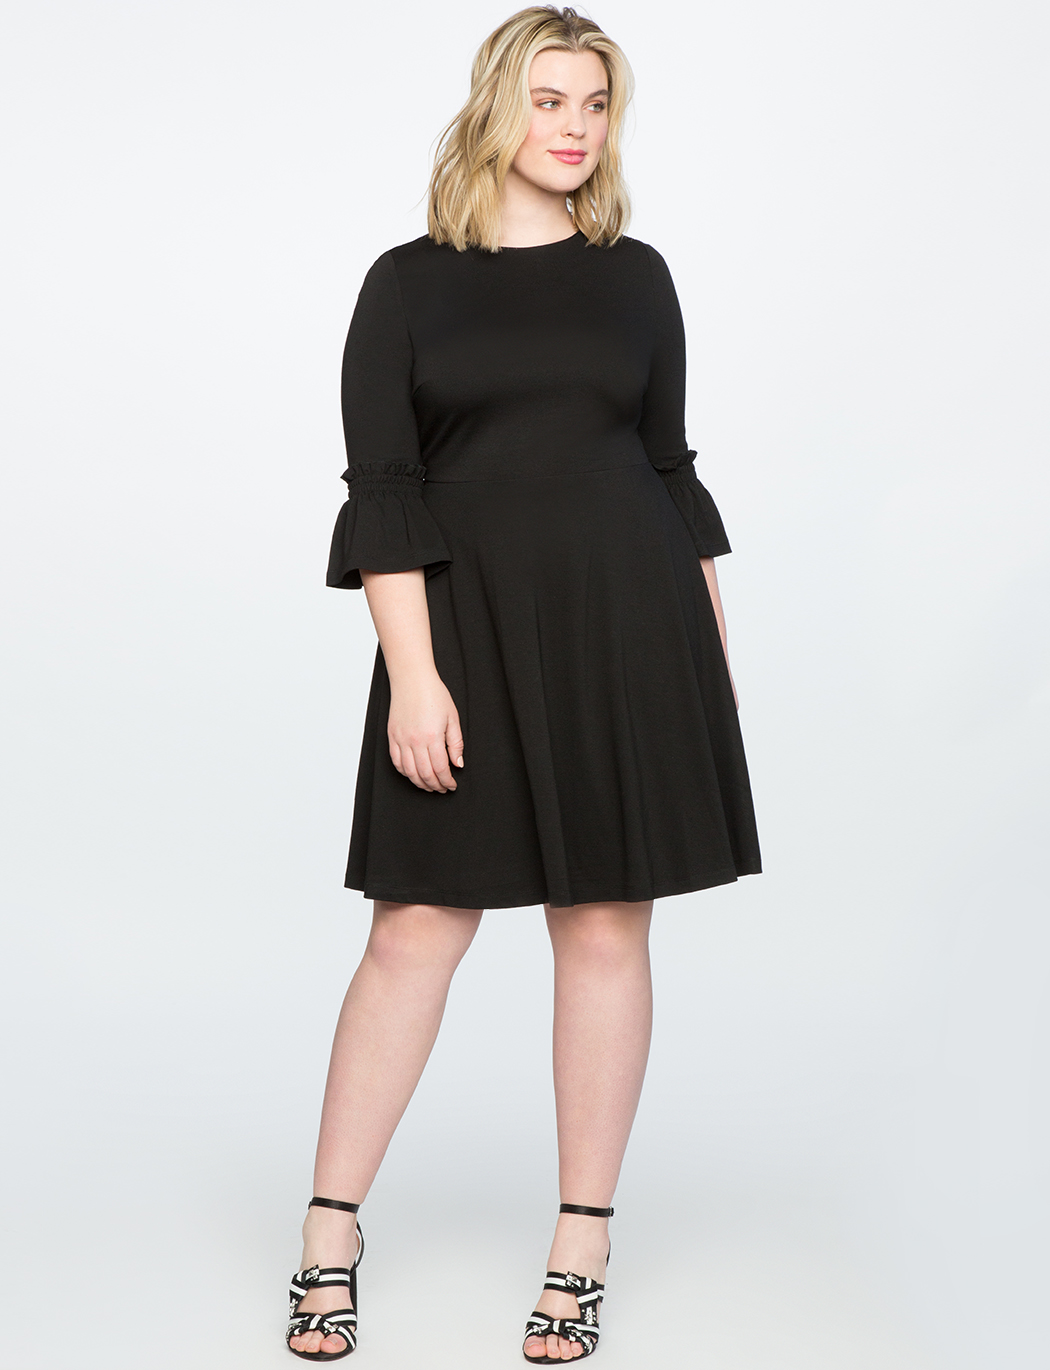 Smocked Sleeve Fit and Flare Dress